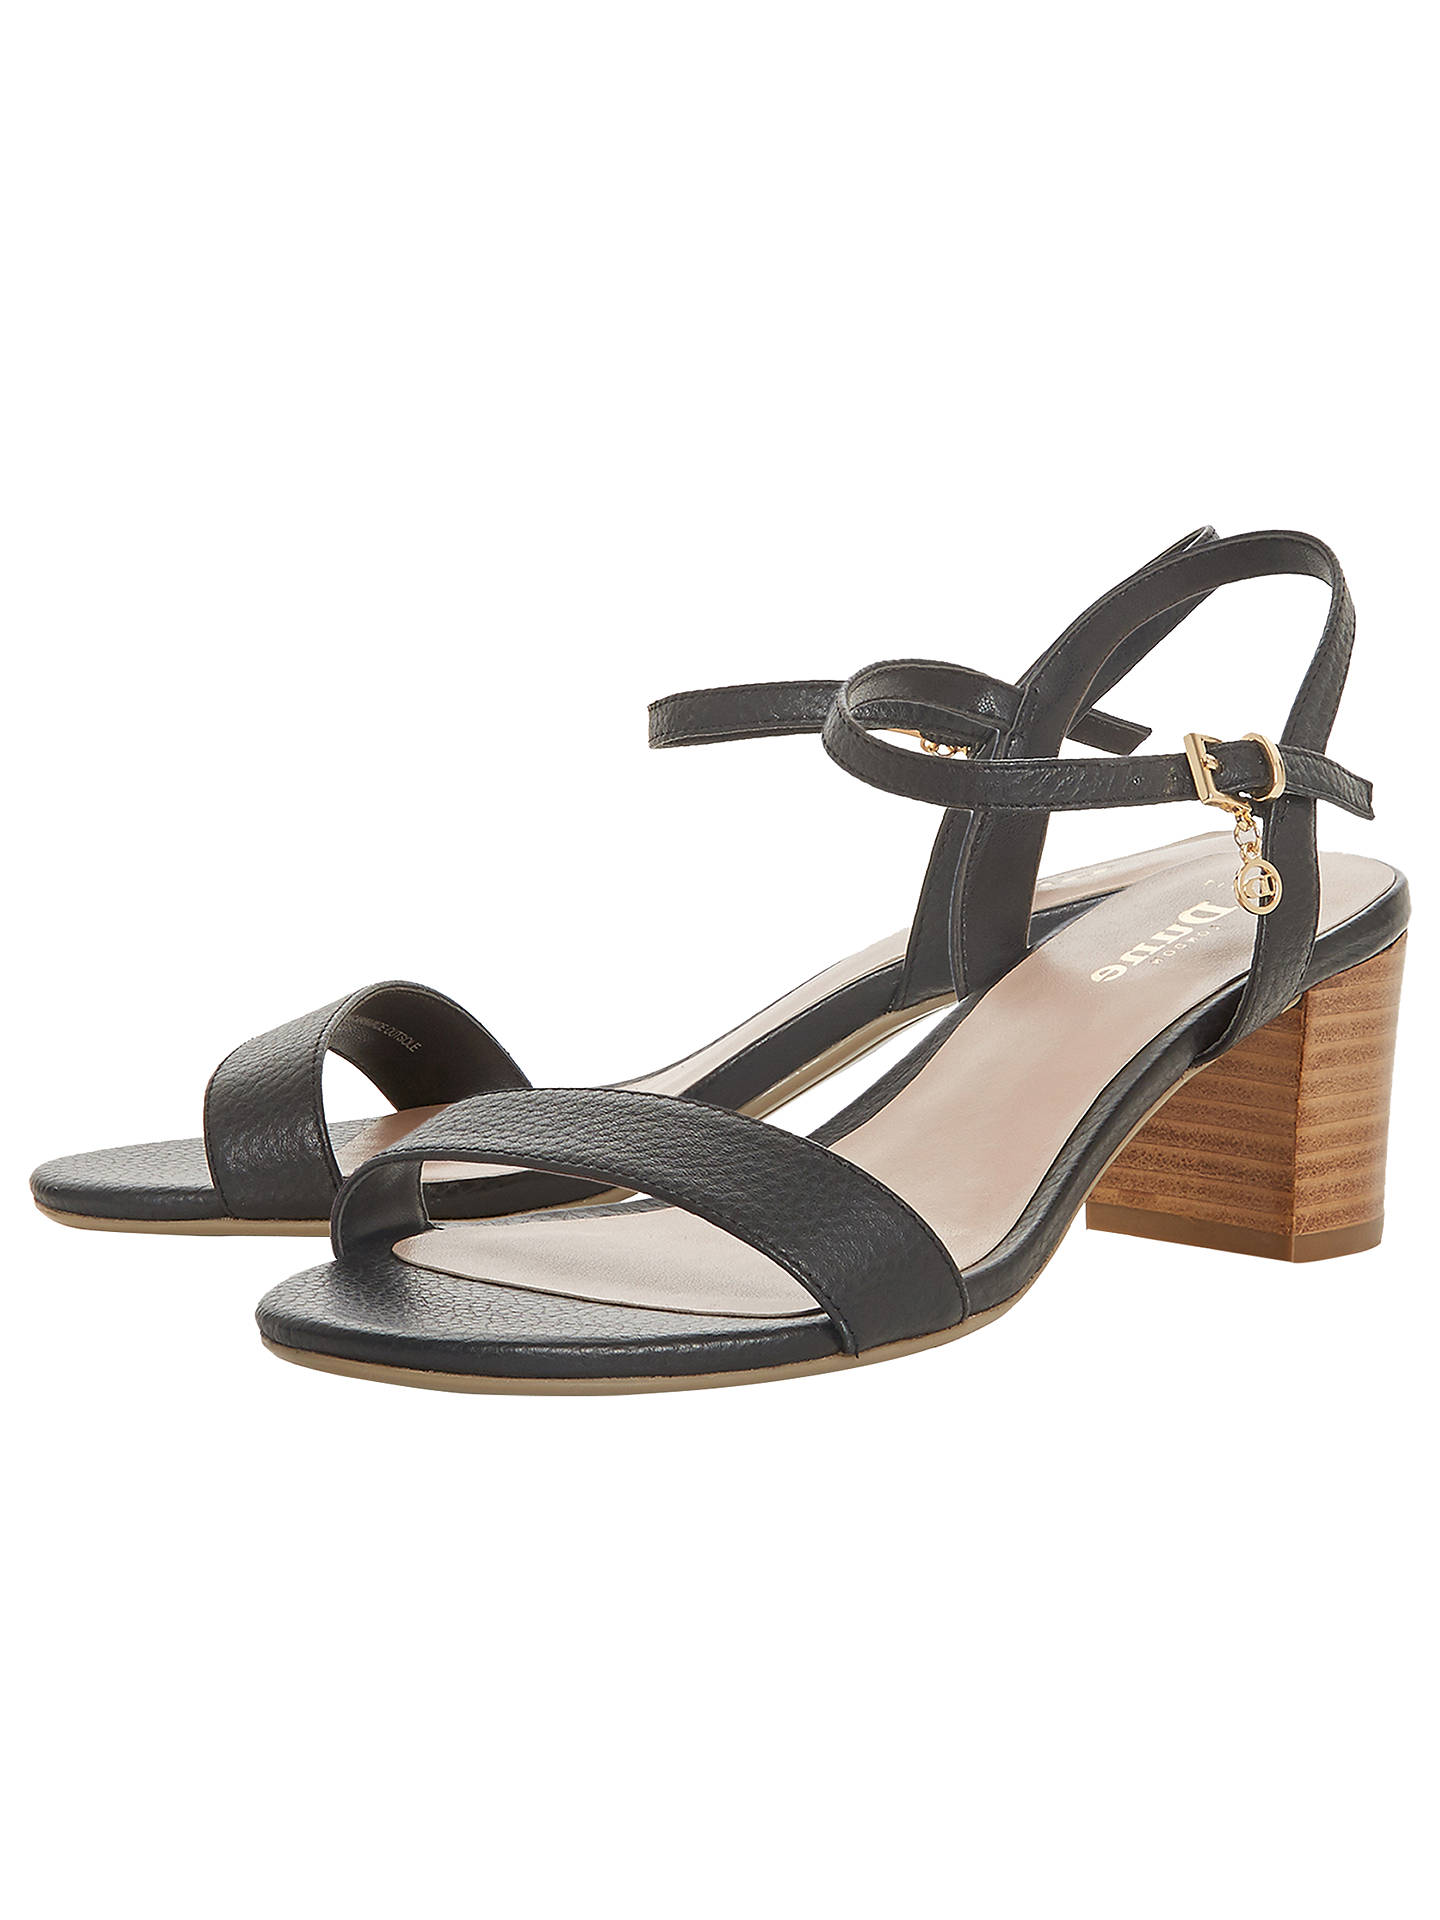 8eef1ccb28eb Dune Wide Fit Jiggle Block Heel Sandals at John Lewis   Partners